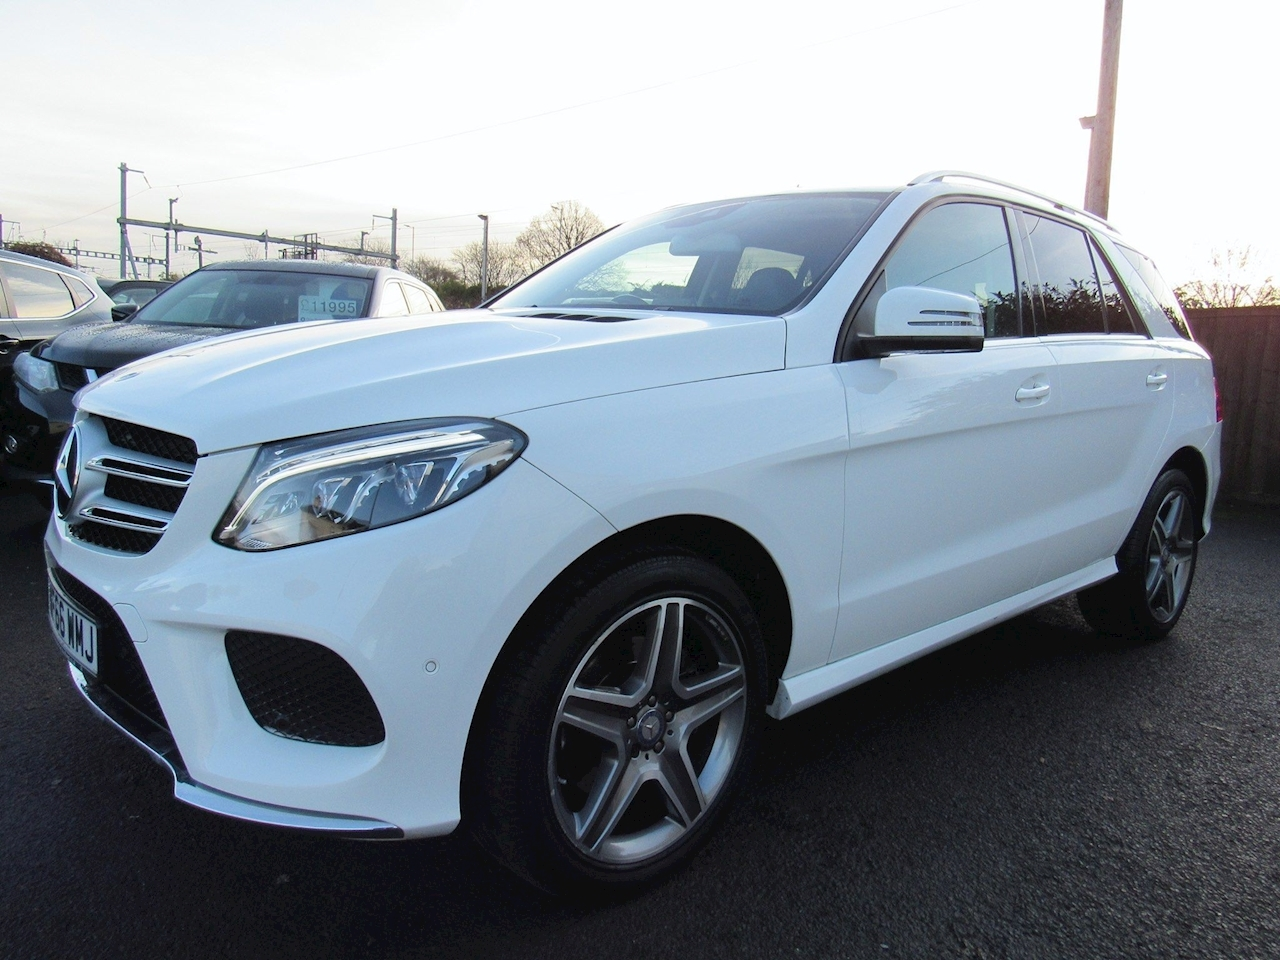 Mercedes-Benz Gle-Class Gle 250 D 4Matic Amg Line Estate 2.1 Automatic Diesel